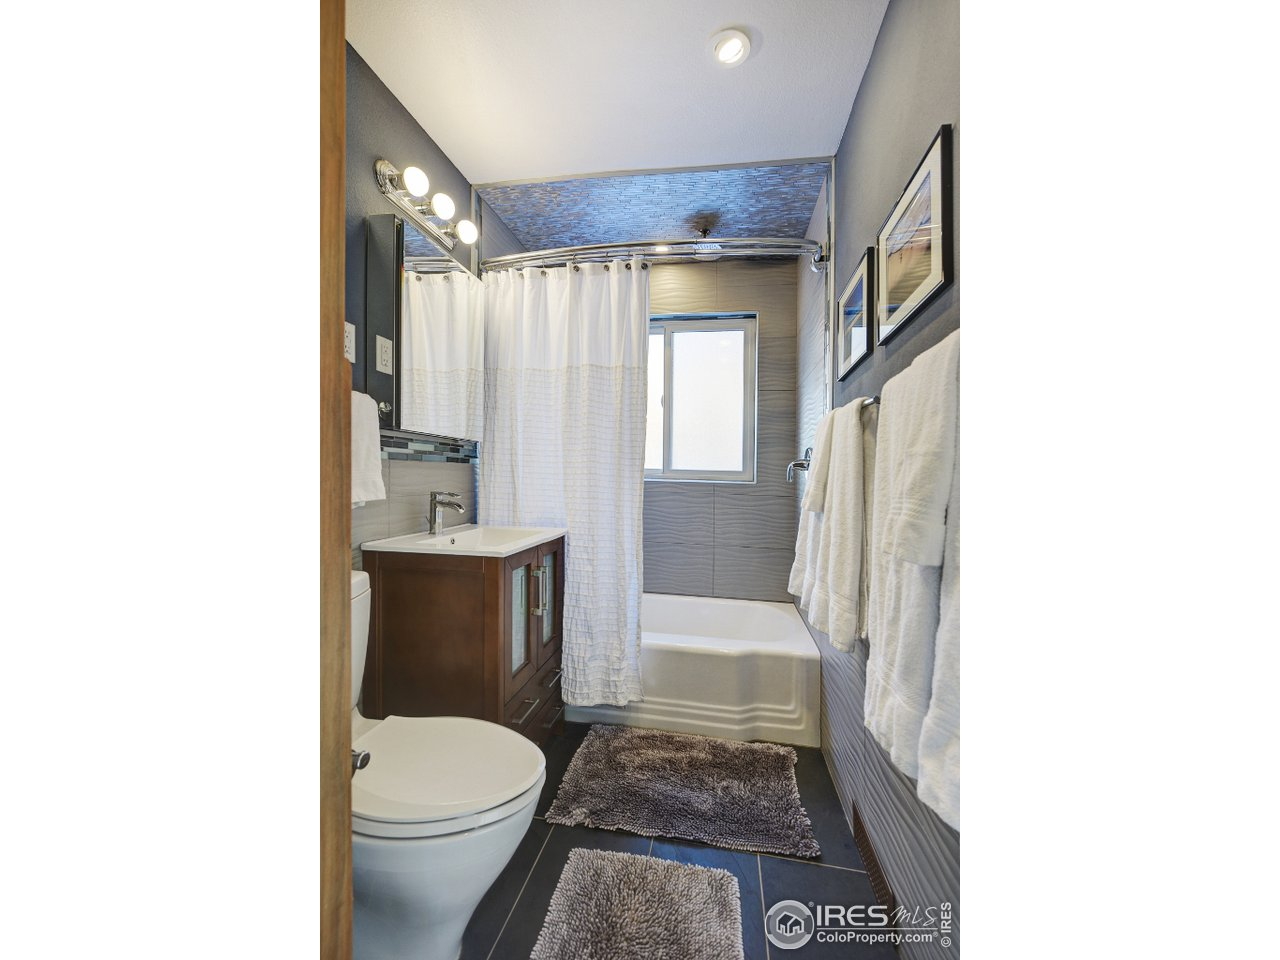 Gorgeous remodeled full bathroom on main level